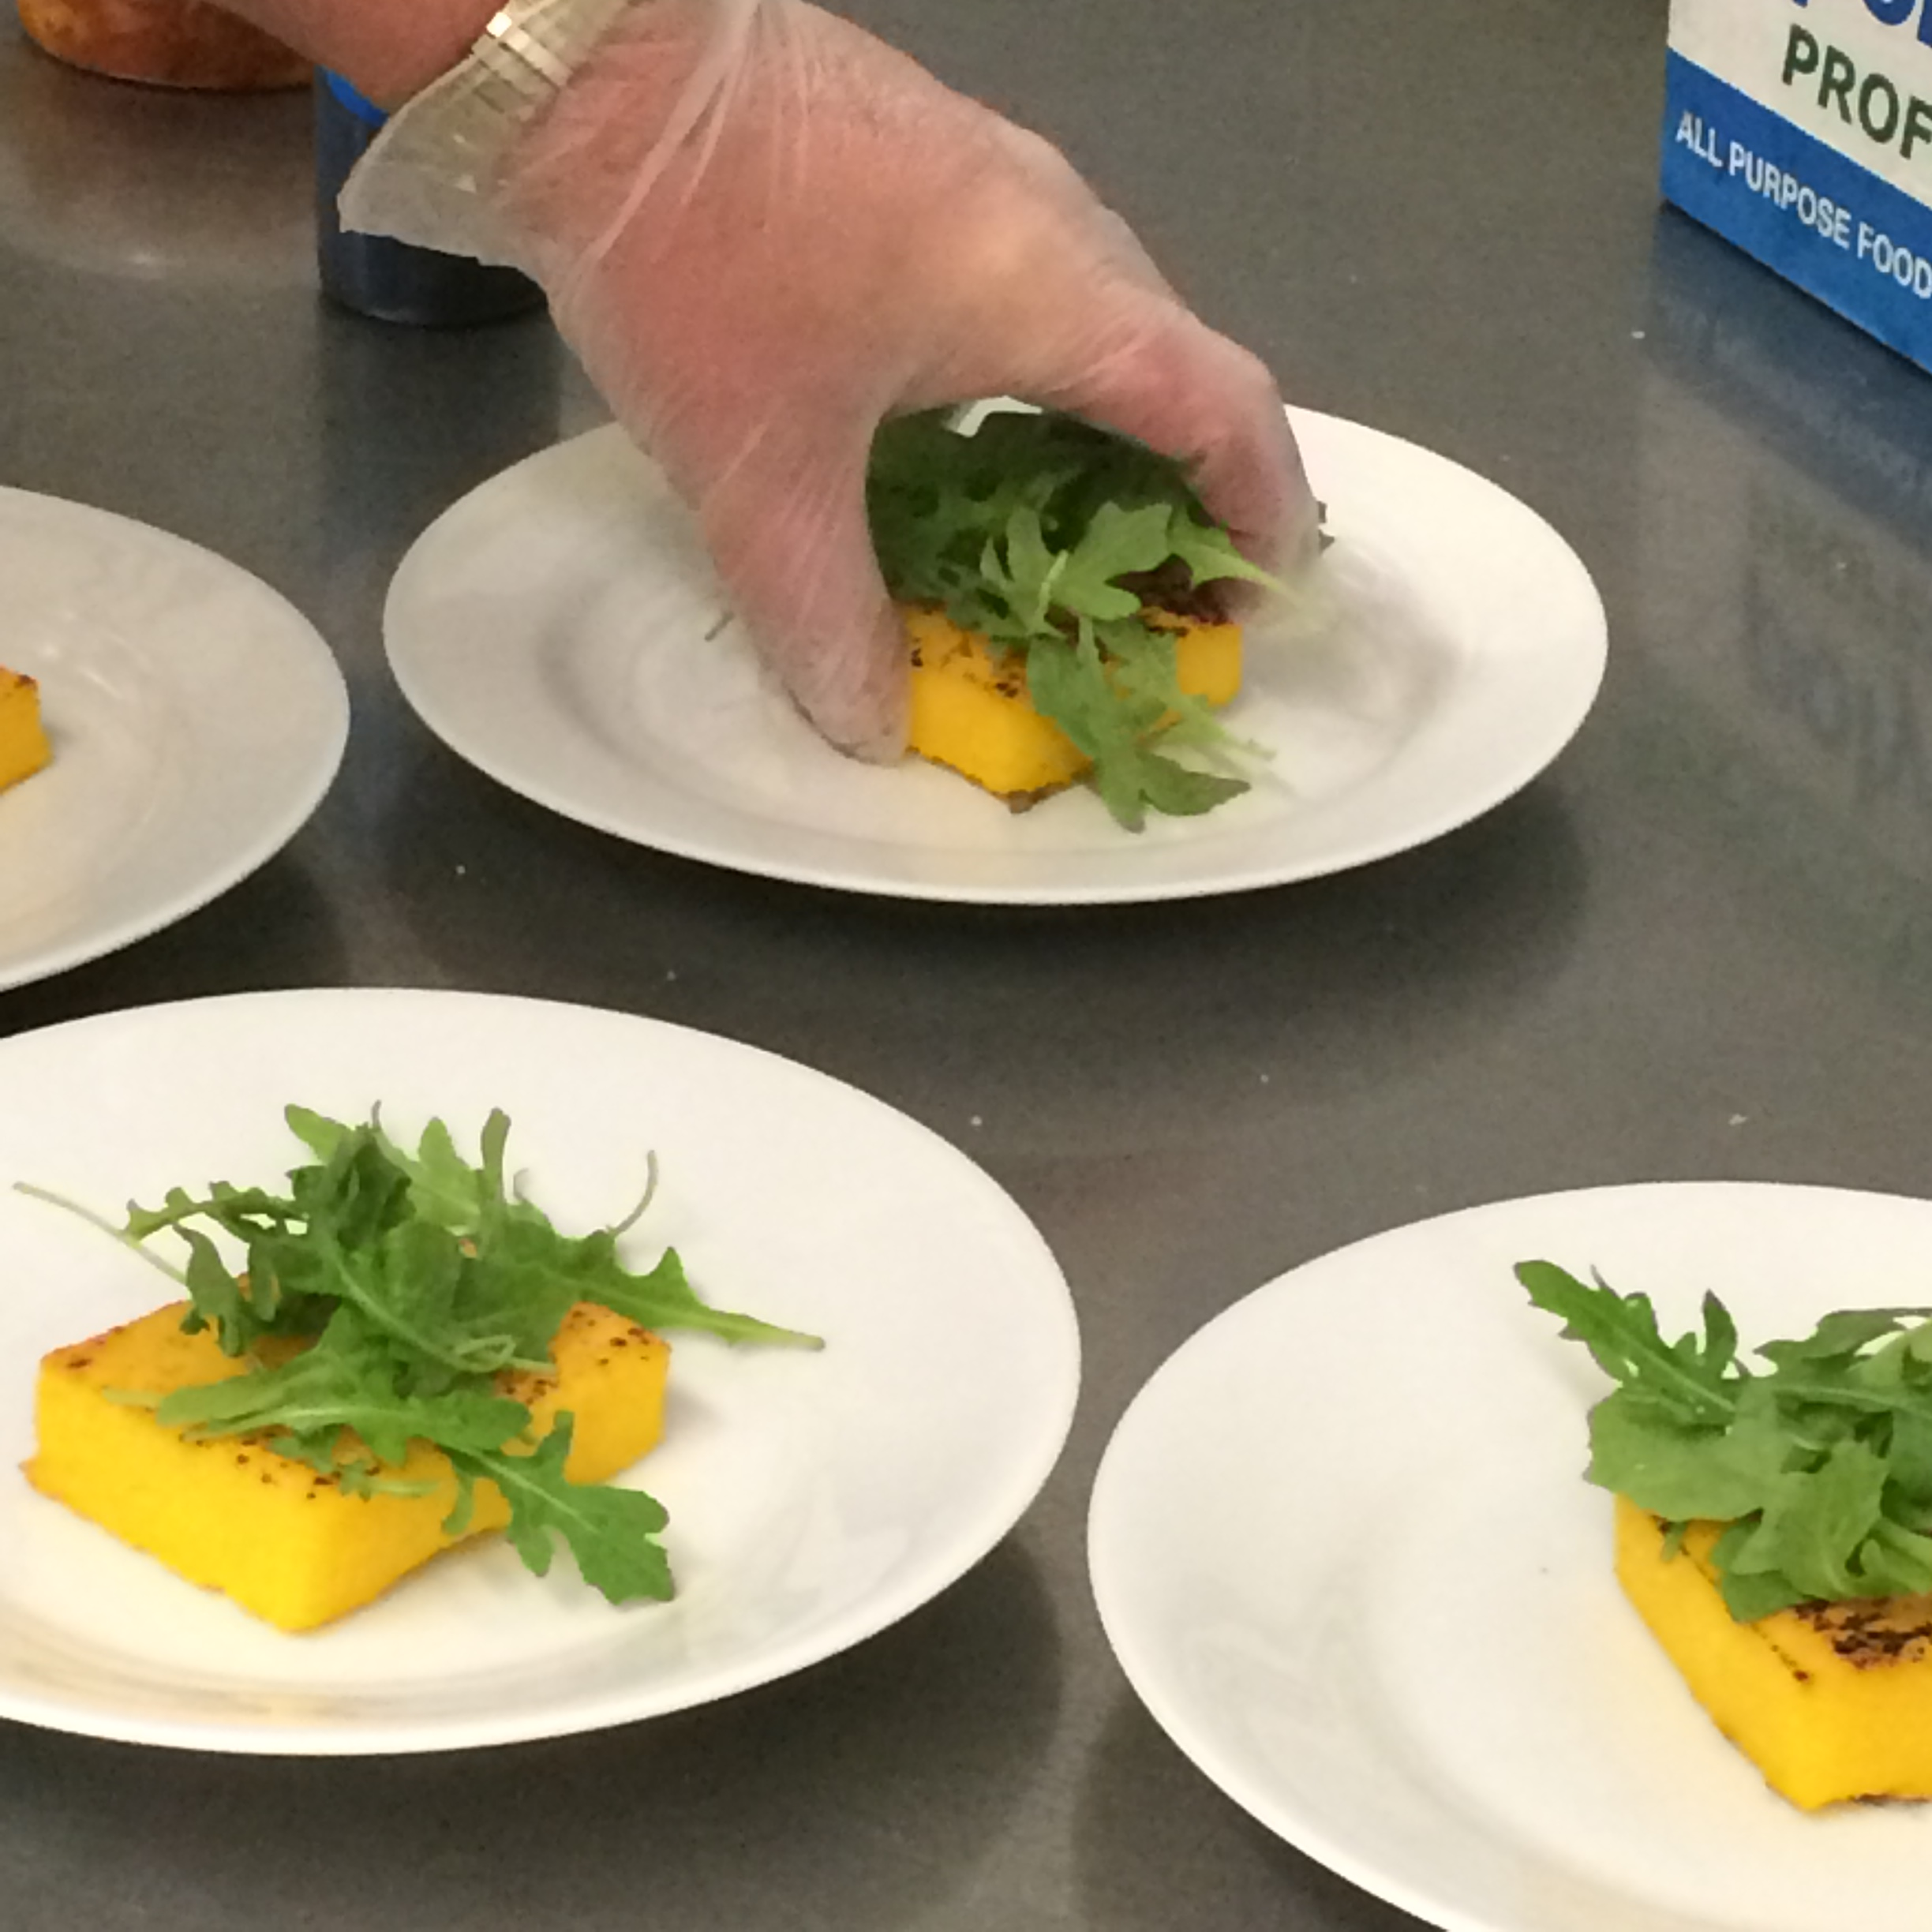 Grilled polenta cakes topped with arugula before being finished off with sun-dried tomatoes.  Gourmet Small Plates by LeCroissant Catering & Events Gourmet Small Plates by LeCroissant Catering & Events 2015 07 30 18